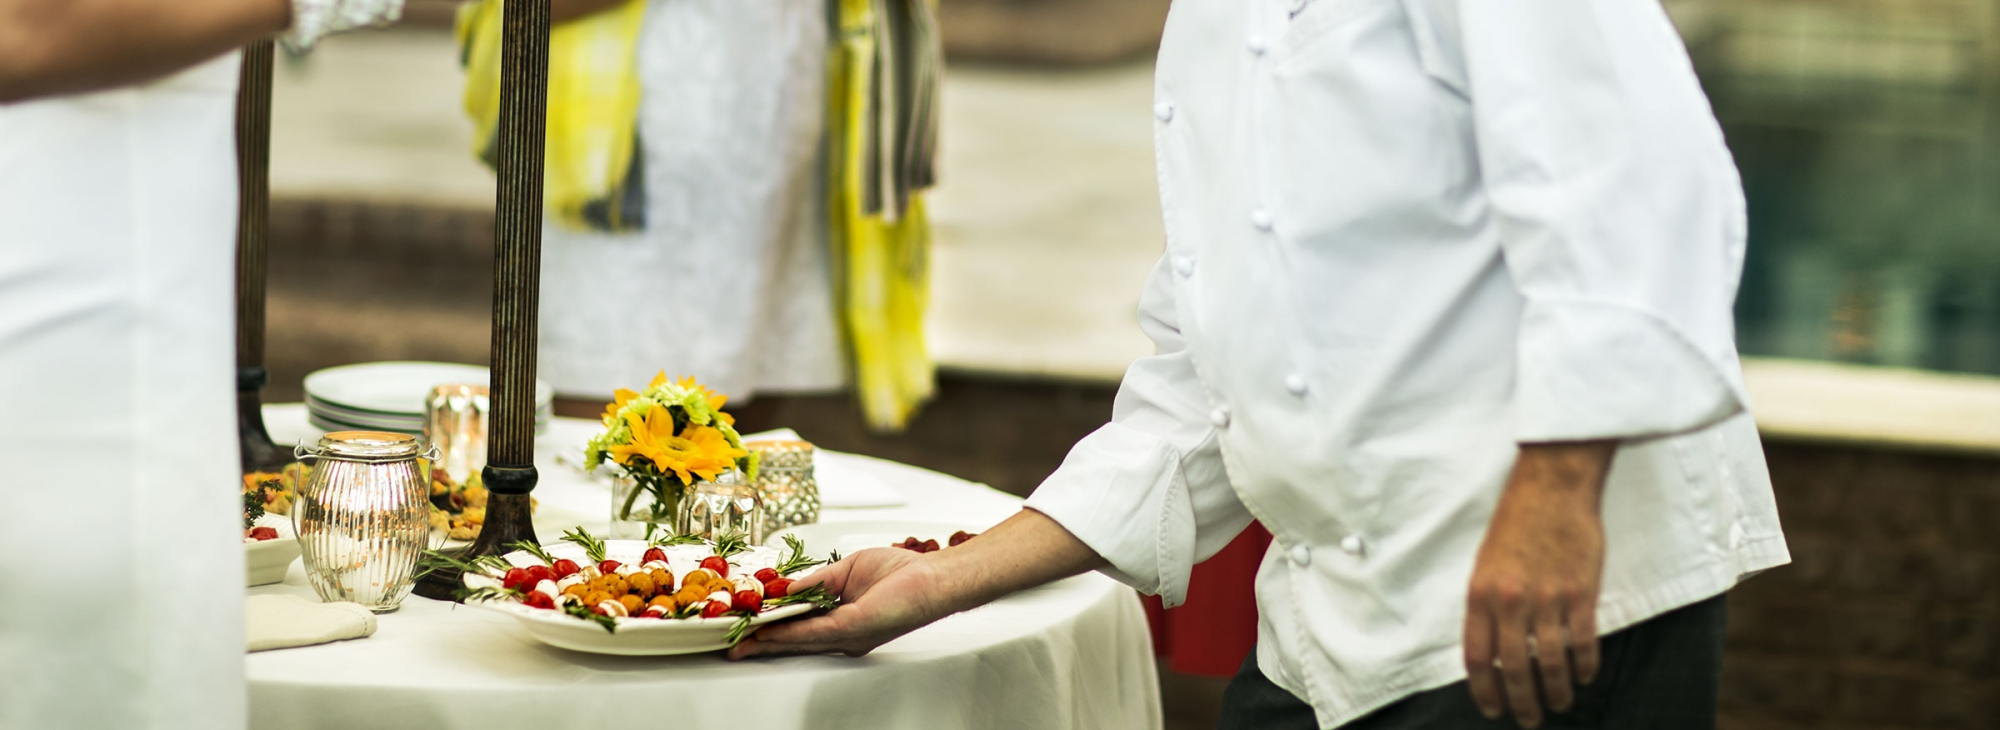 A chef catering a wedding